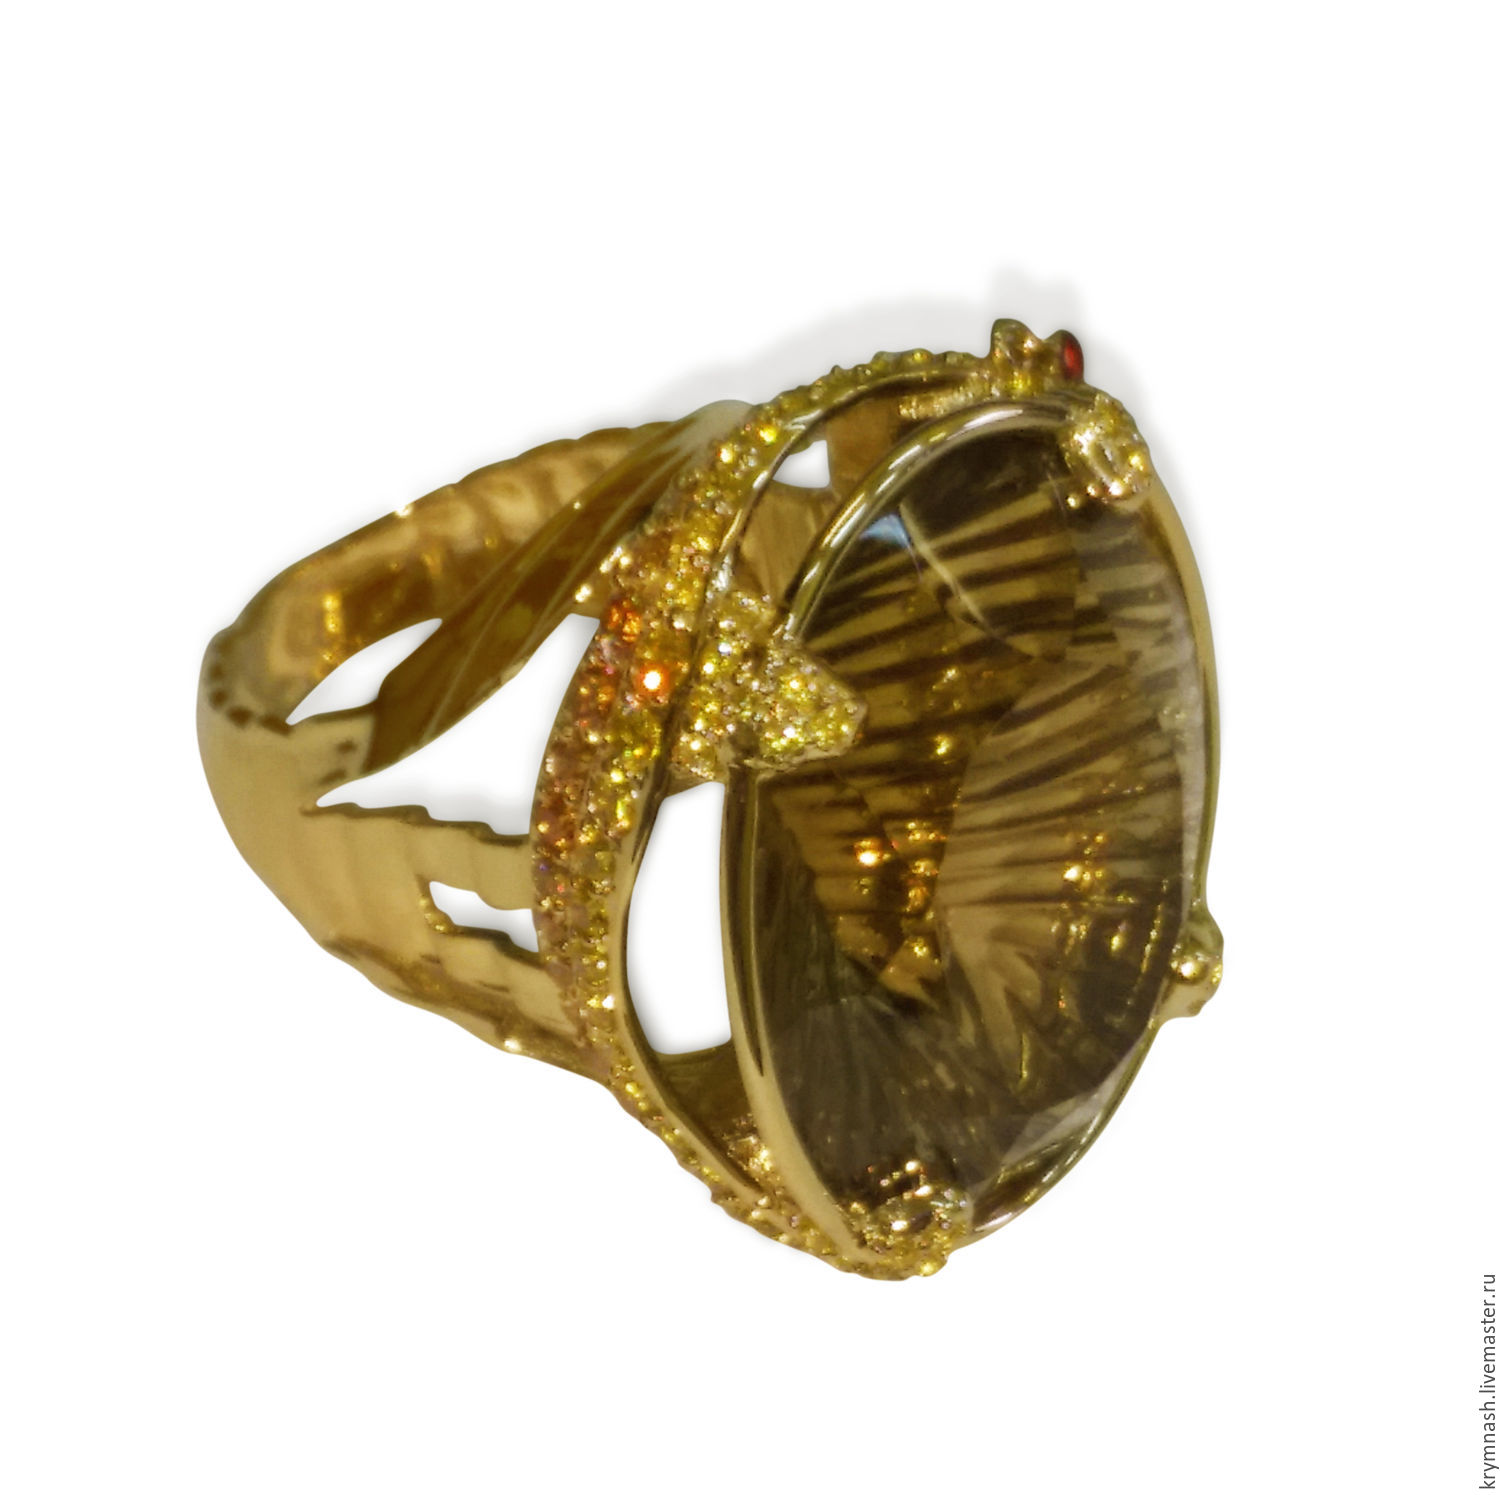 Online gold ring shopping